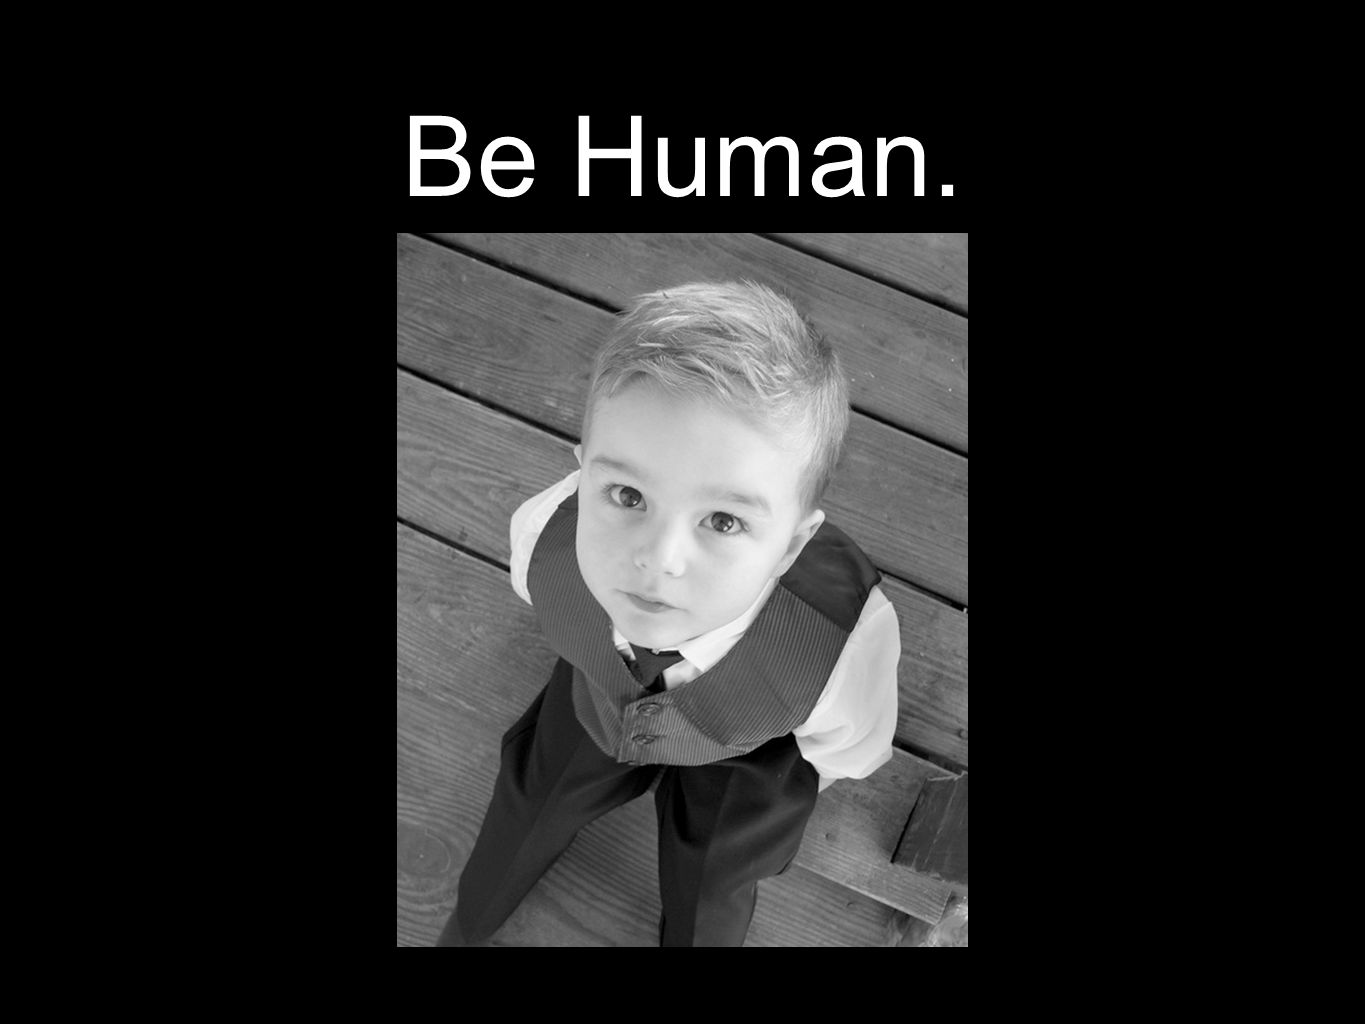 Be Human.